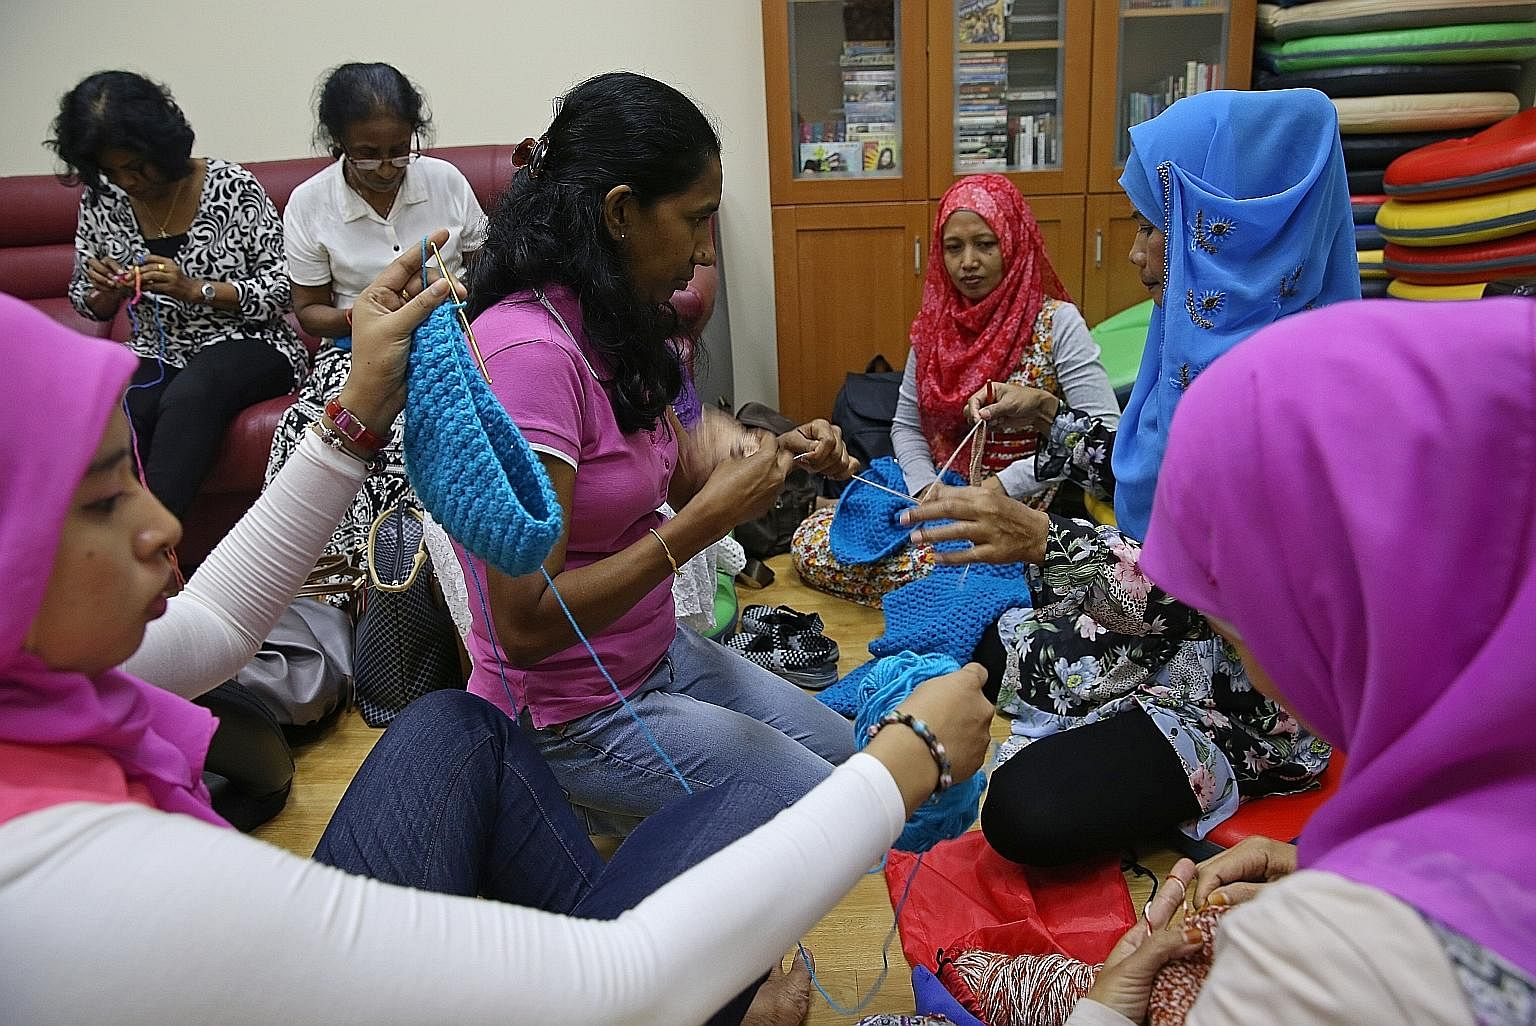 Indonesians Tri Susanty (far left, wearing a purple tudung), 29, Rina Waty (third from right, in a red tudung), 41, and Sunarmi (in a blue tudung), 42, sharing crochet tips with Sri Lankan Chamila, 42, during class. Besides being able to make shawls to pr